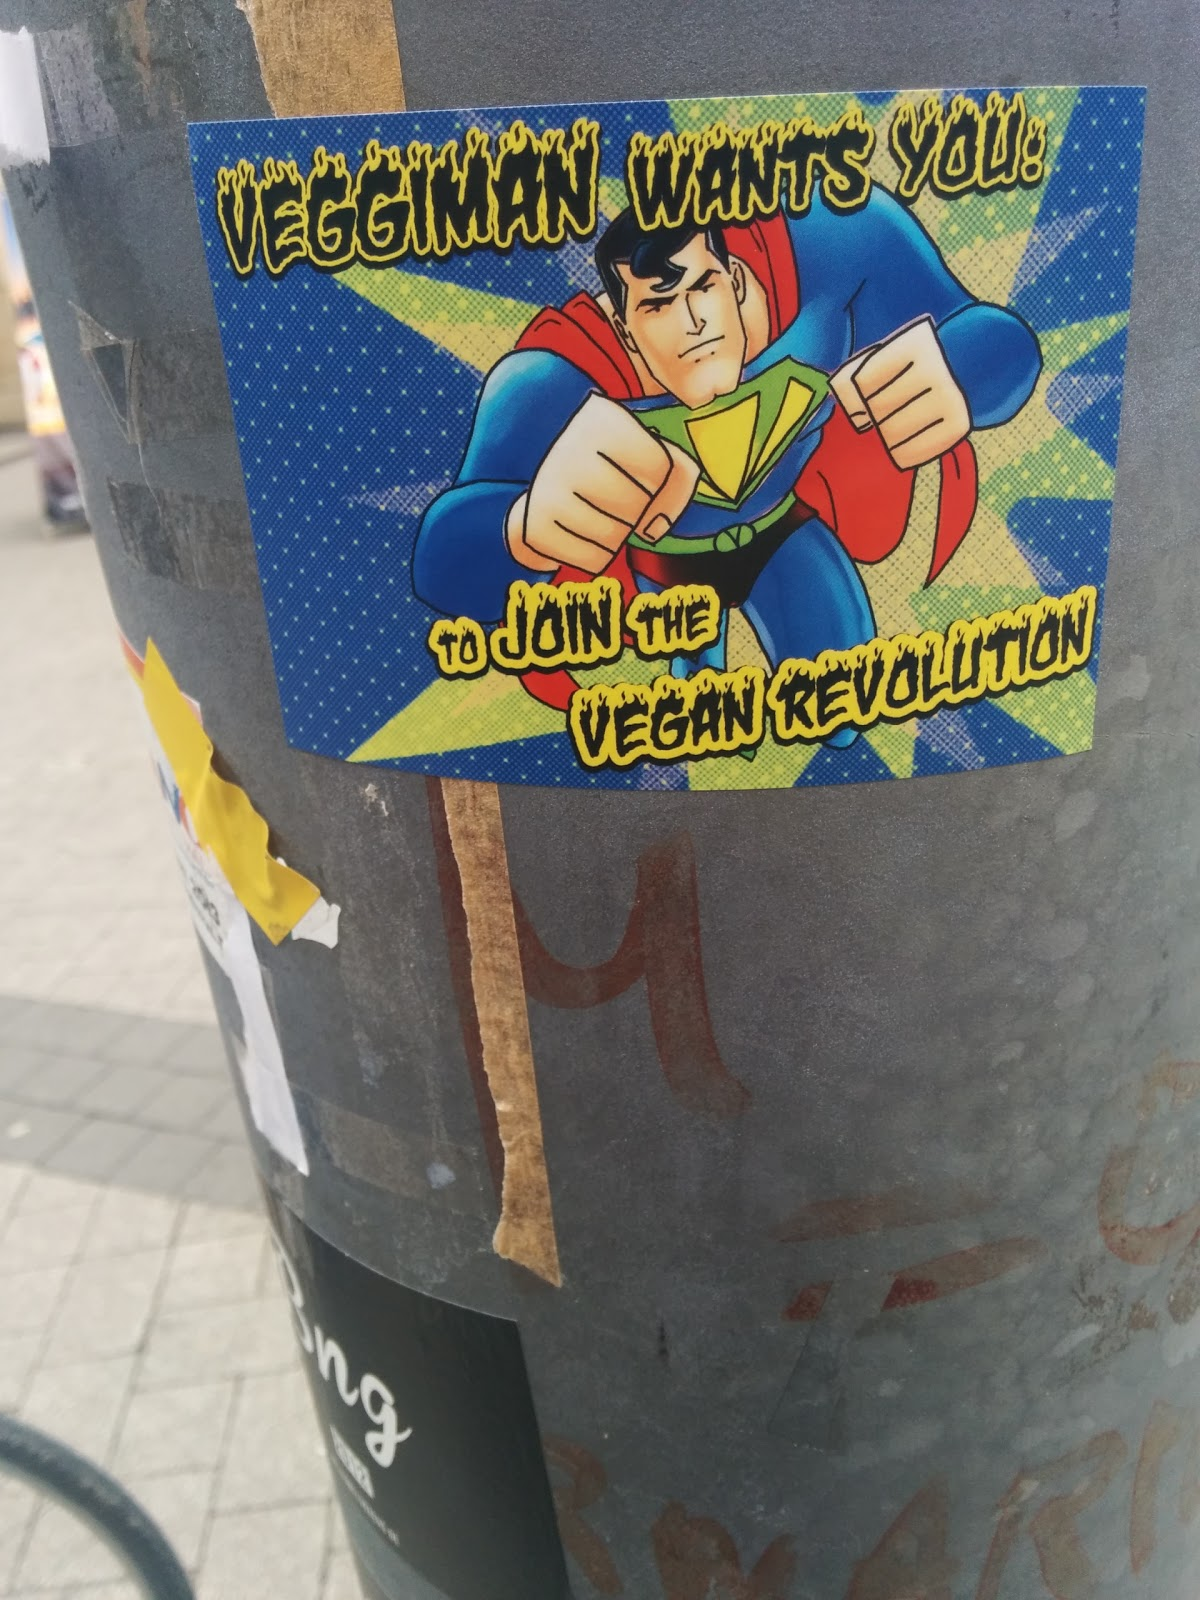 Veggiman Wants You